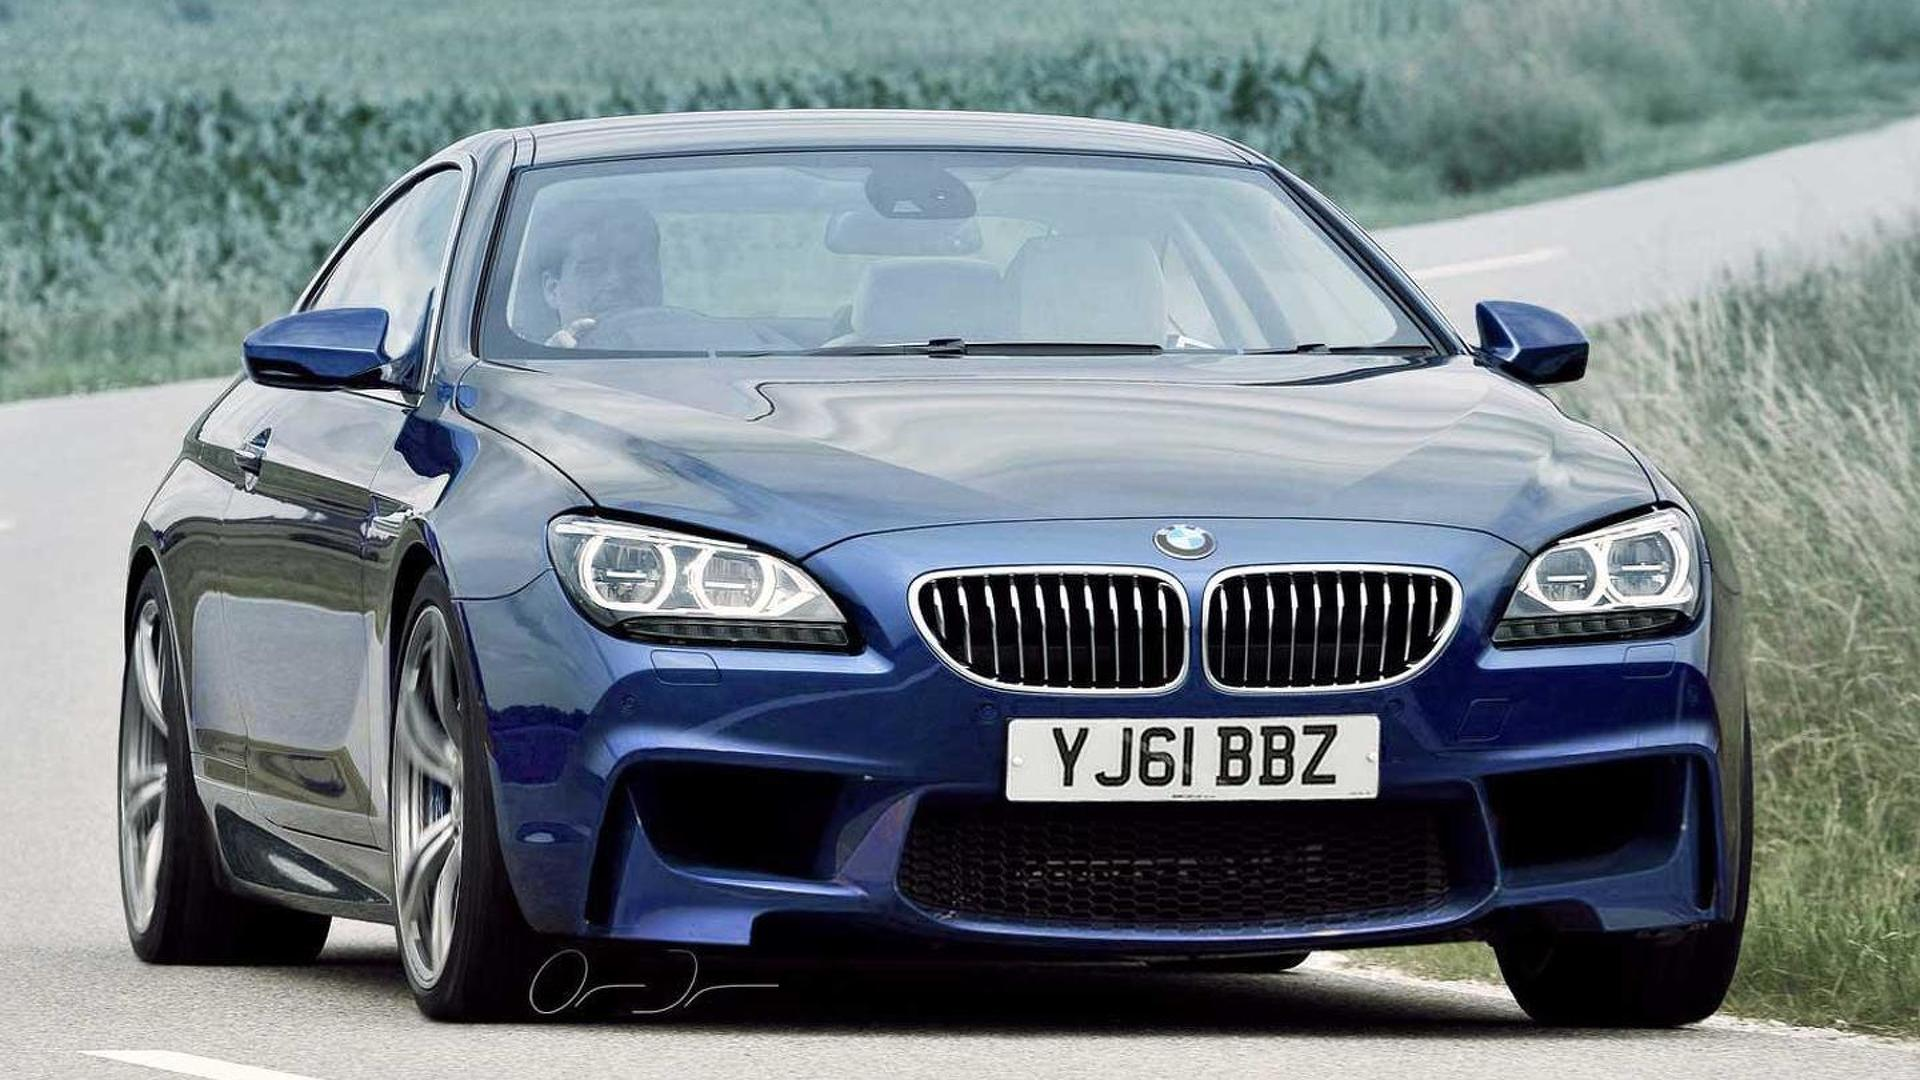 2013 BMW M6 (F13)  rendered